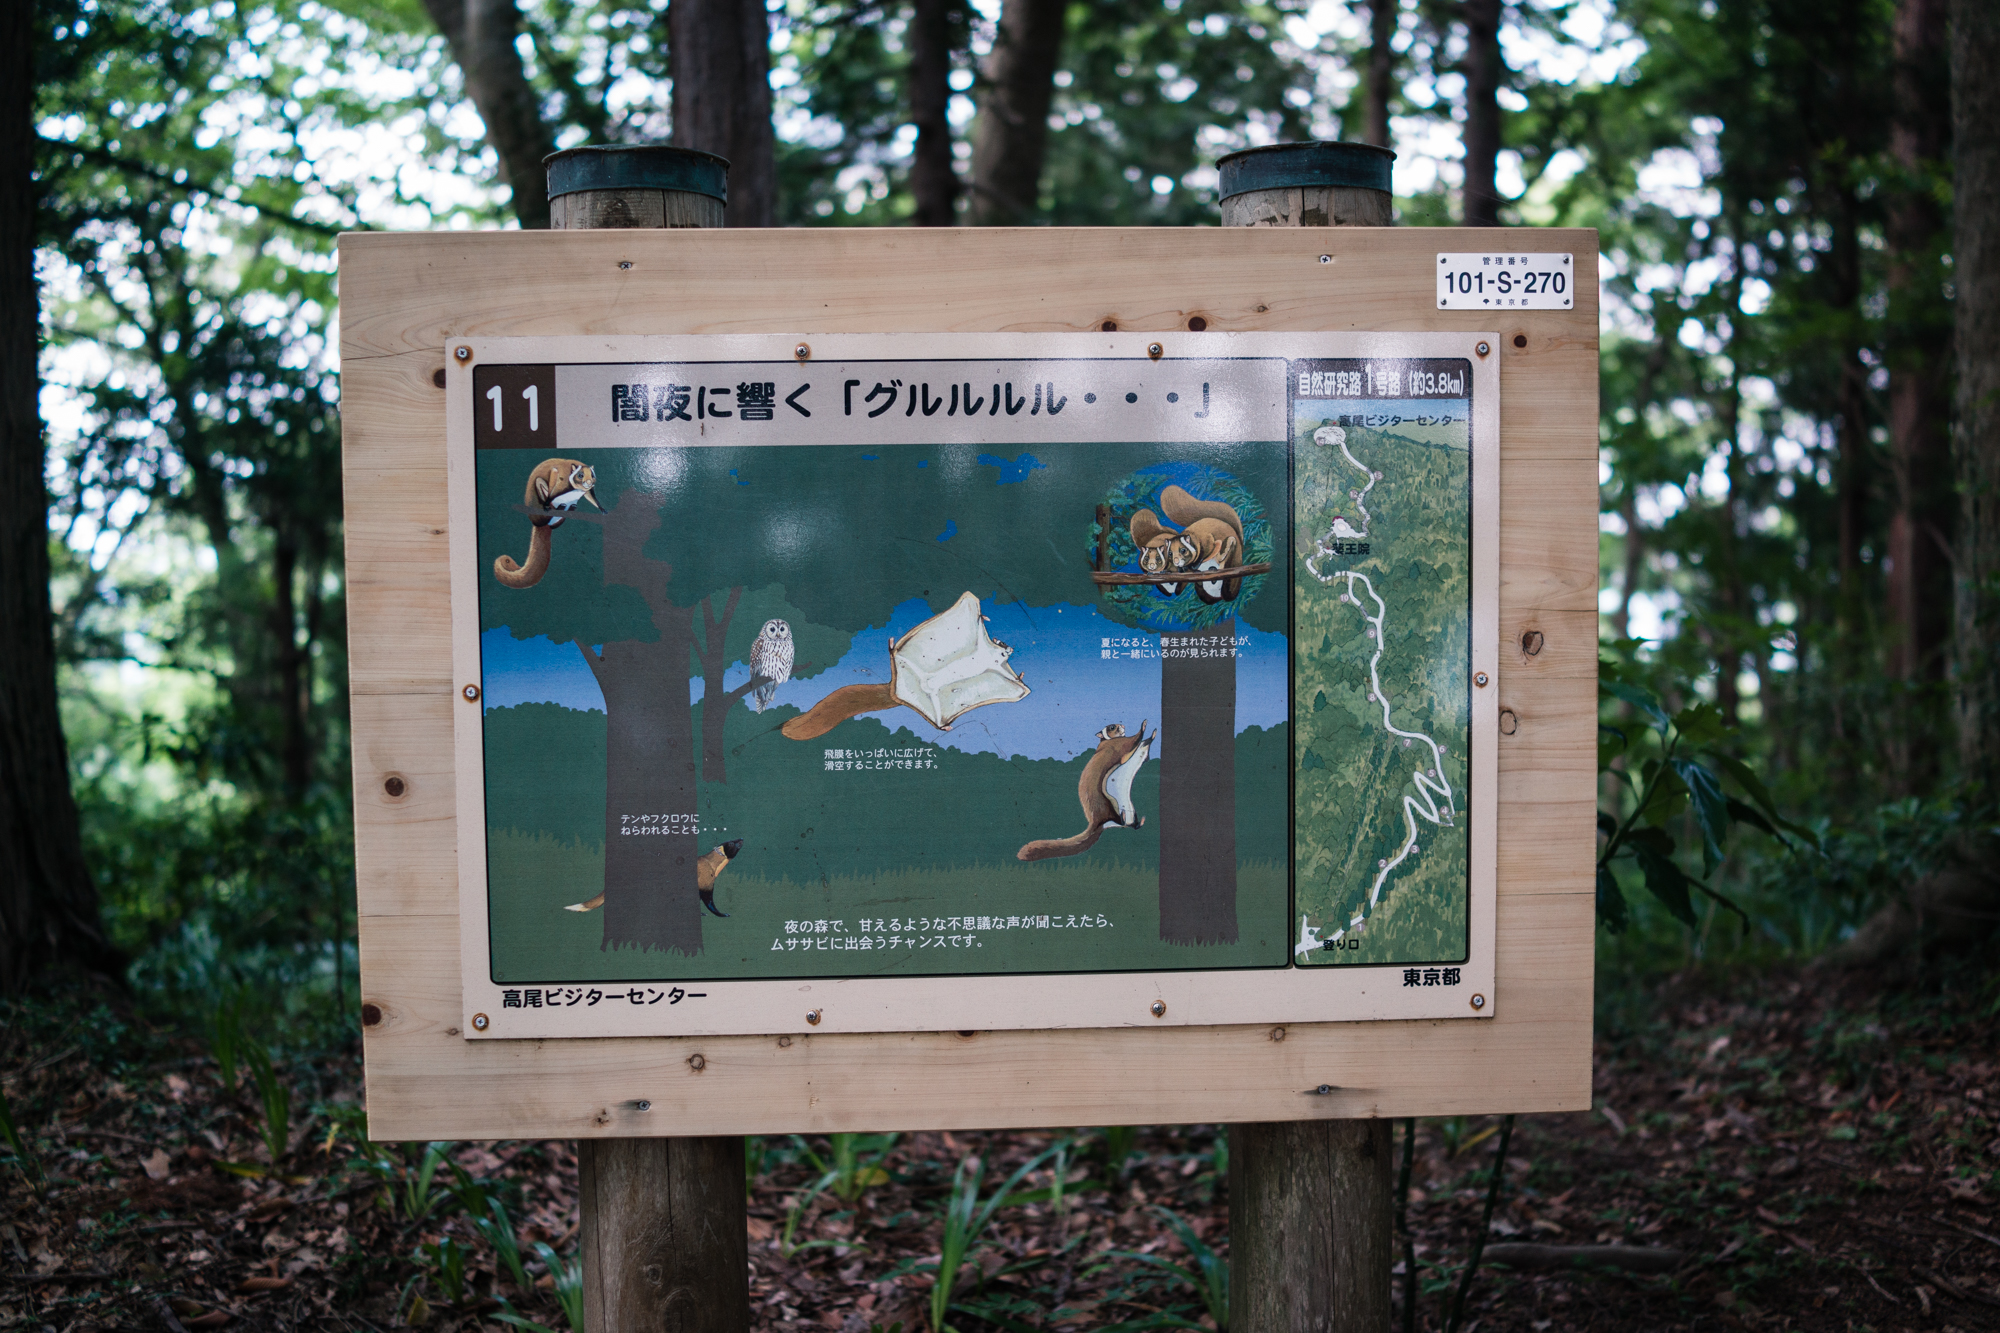 Flying Squirrels on Mt. Takao